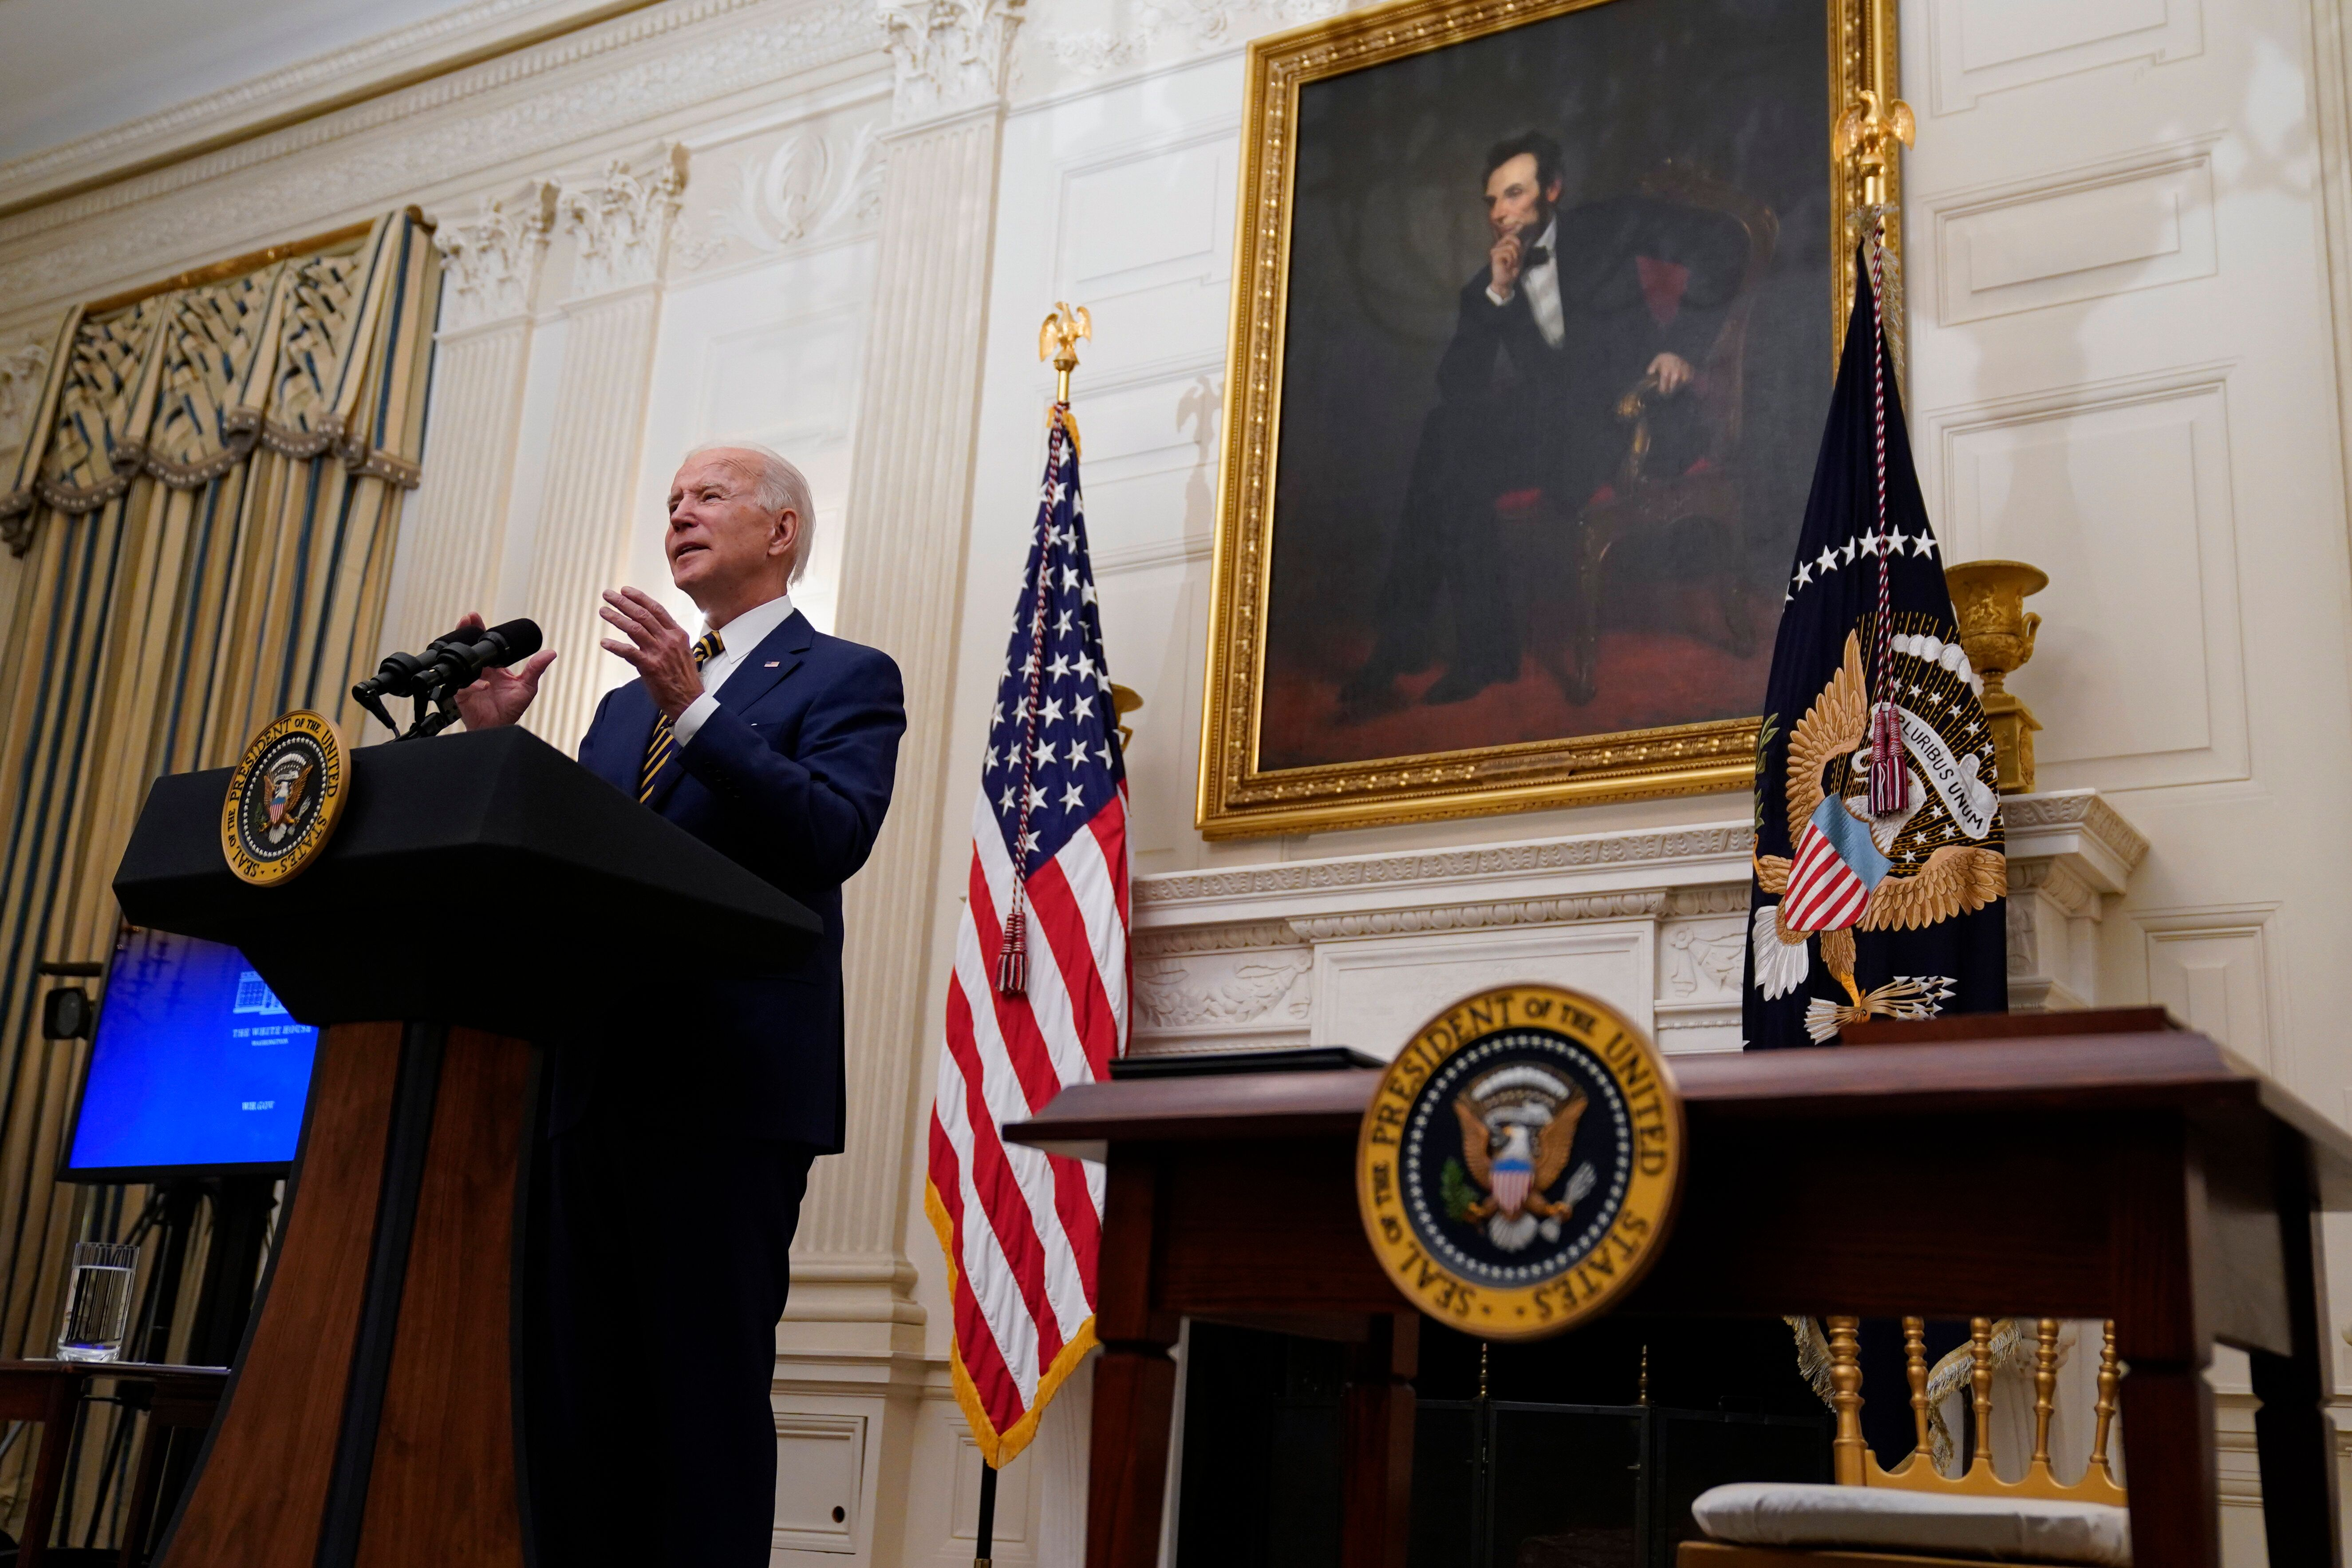 President Joe Biden delivers remarks on the economy in the State Dining Room of the White House, Friday, Jan. 22, 2021, in Wa